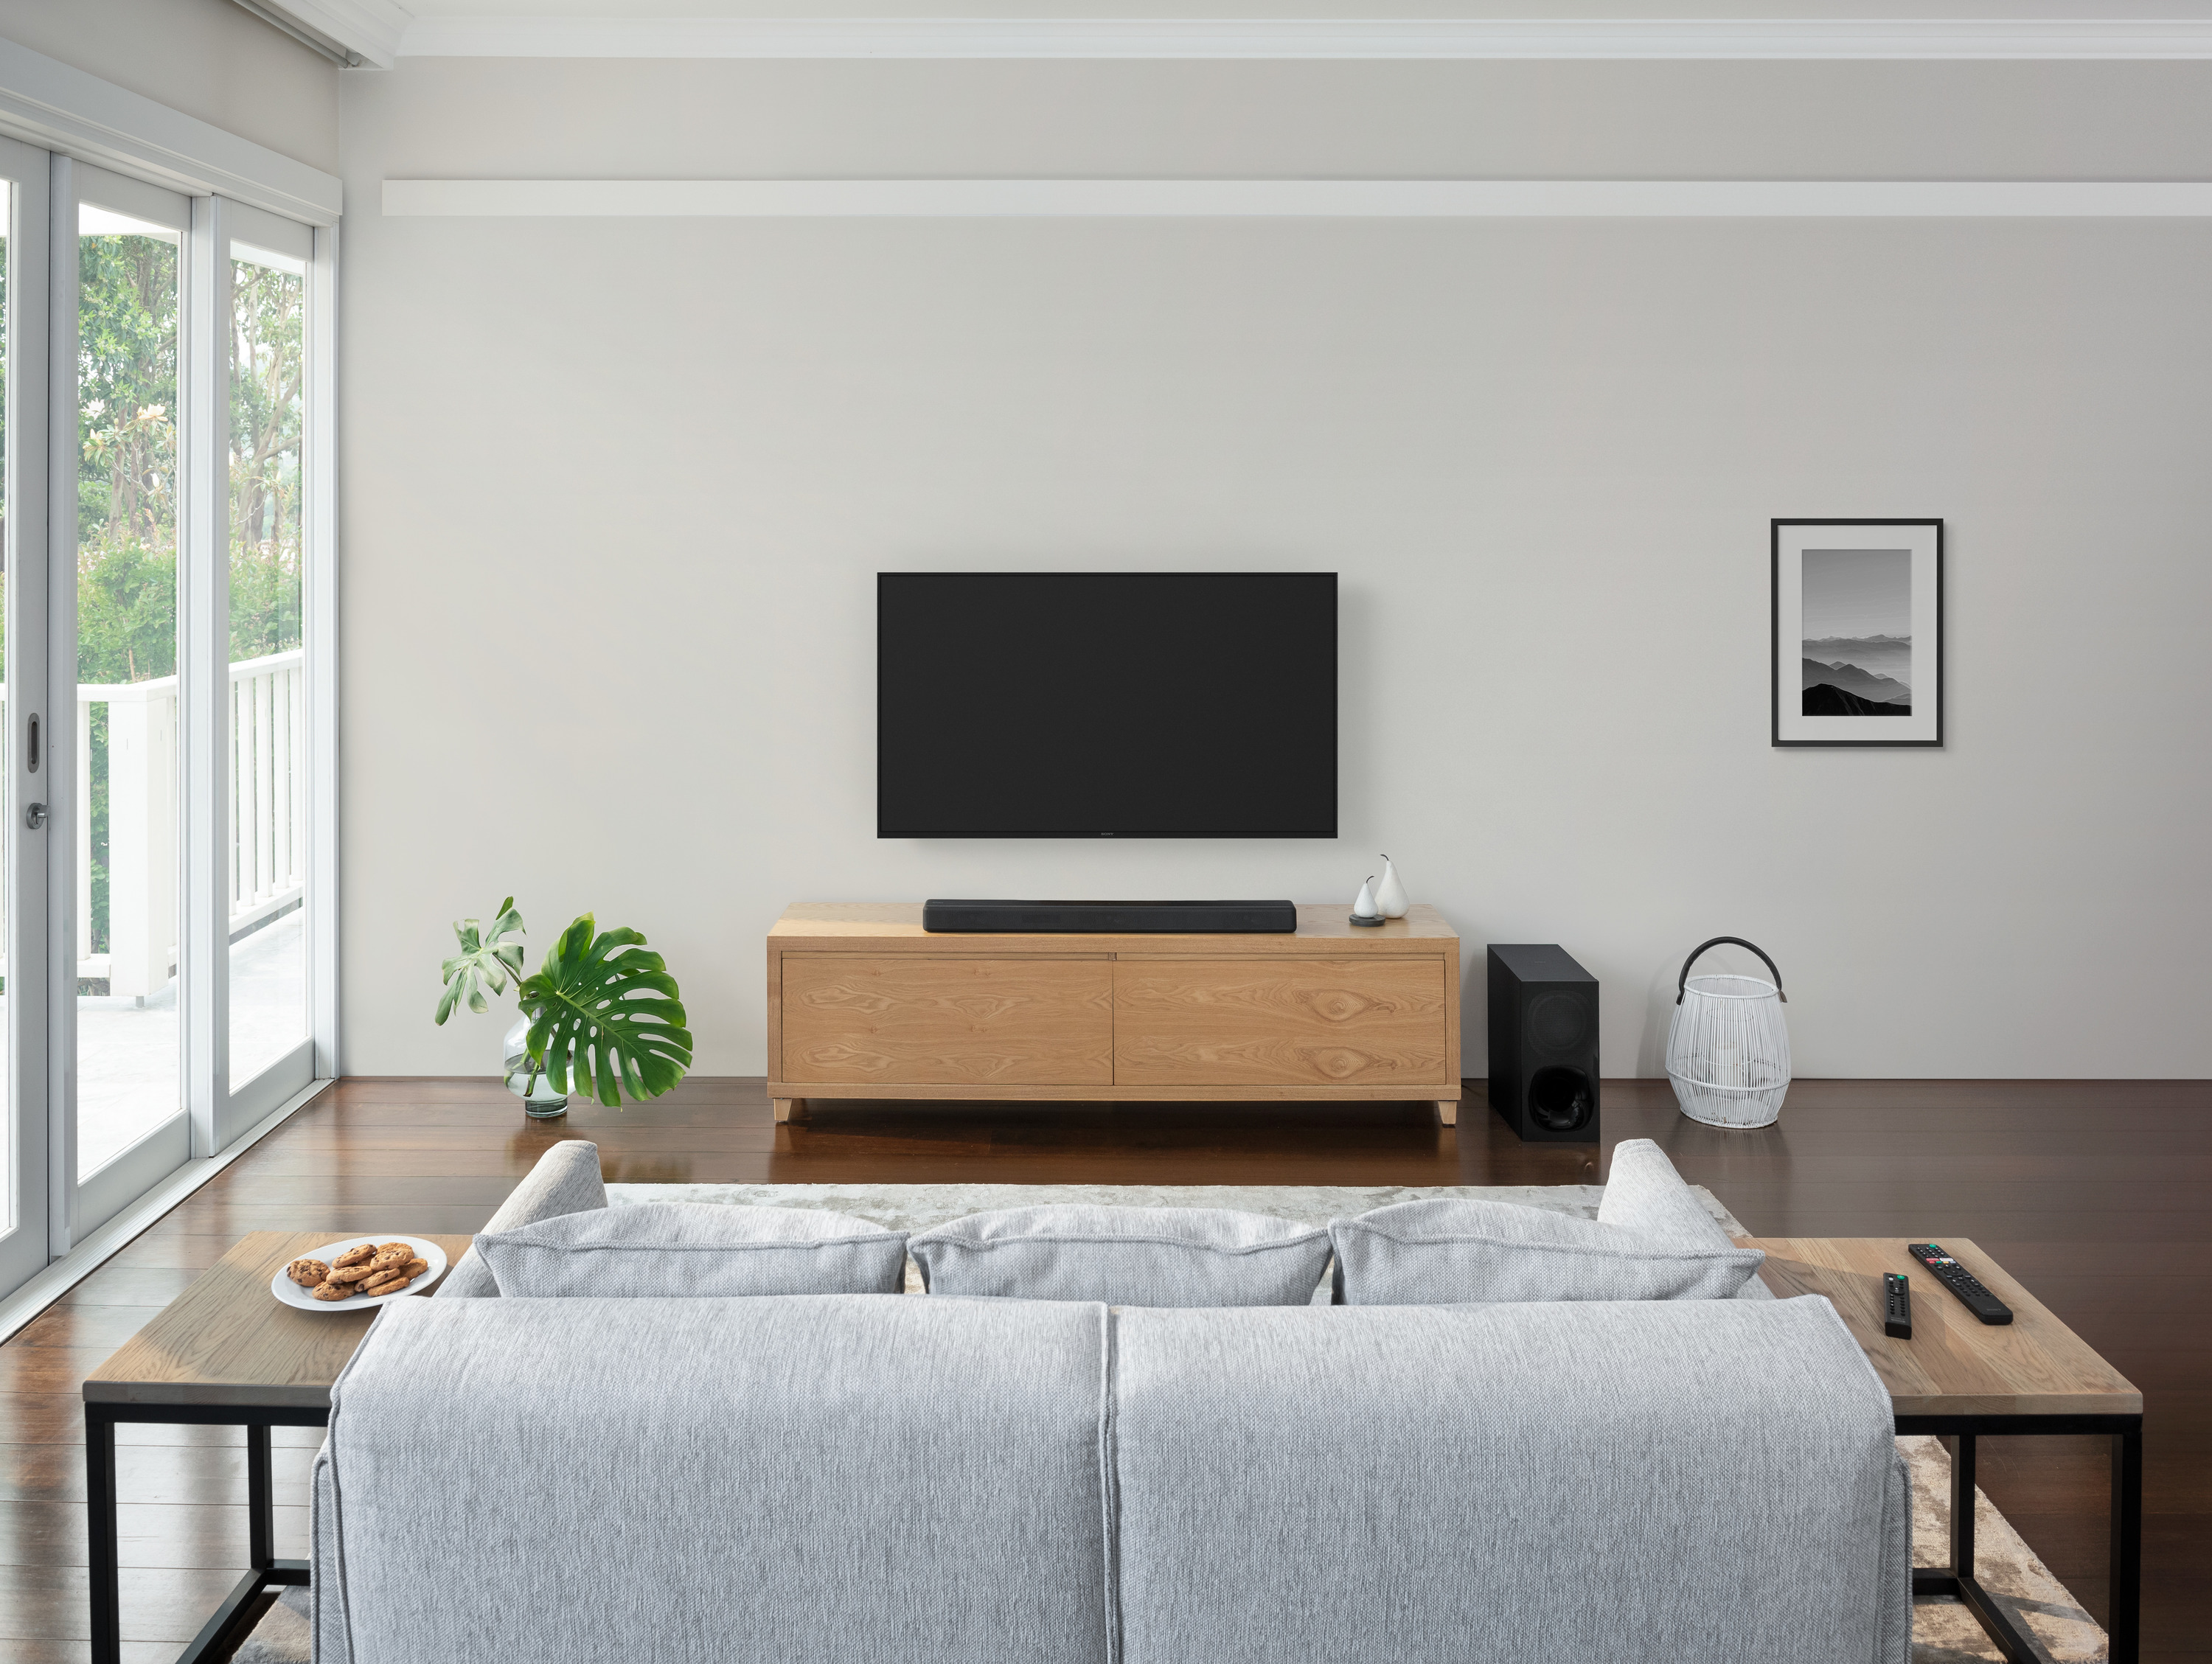 Sound bars for TV: the five best you can buy in the UK in 2021, including Sonos, JBL, and Sony